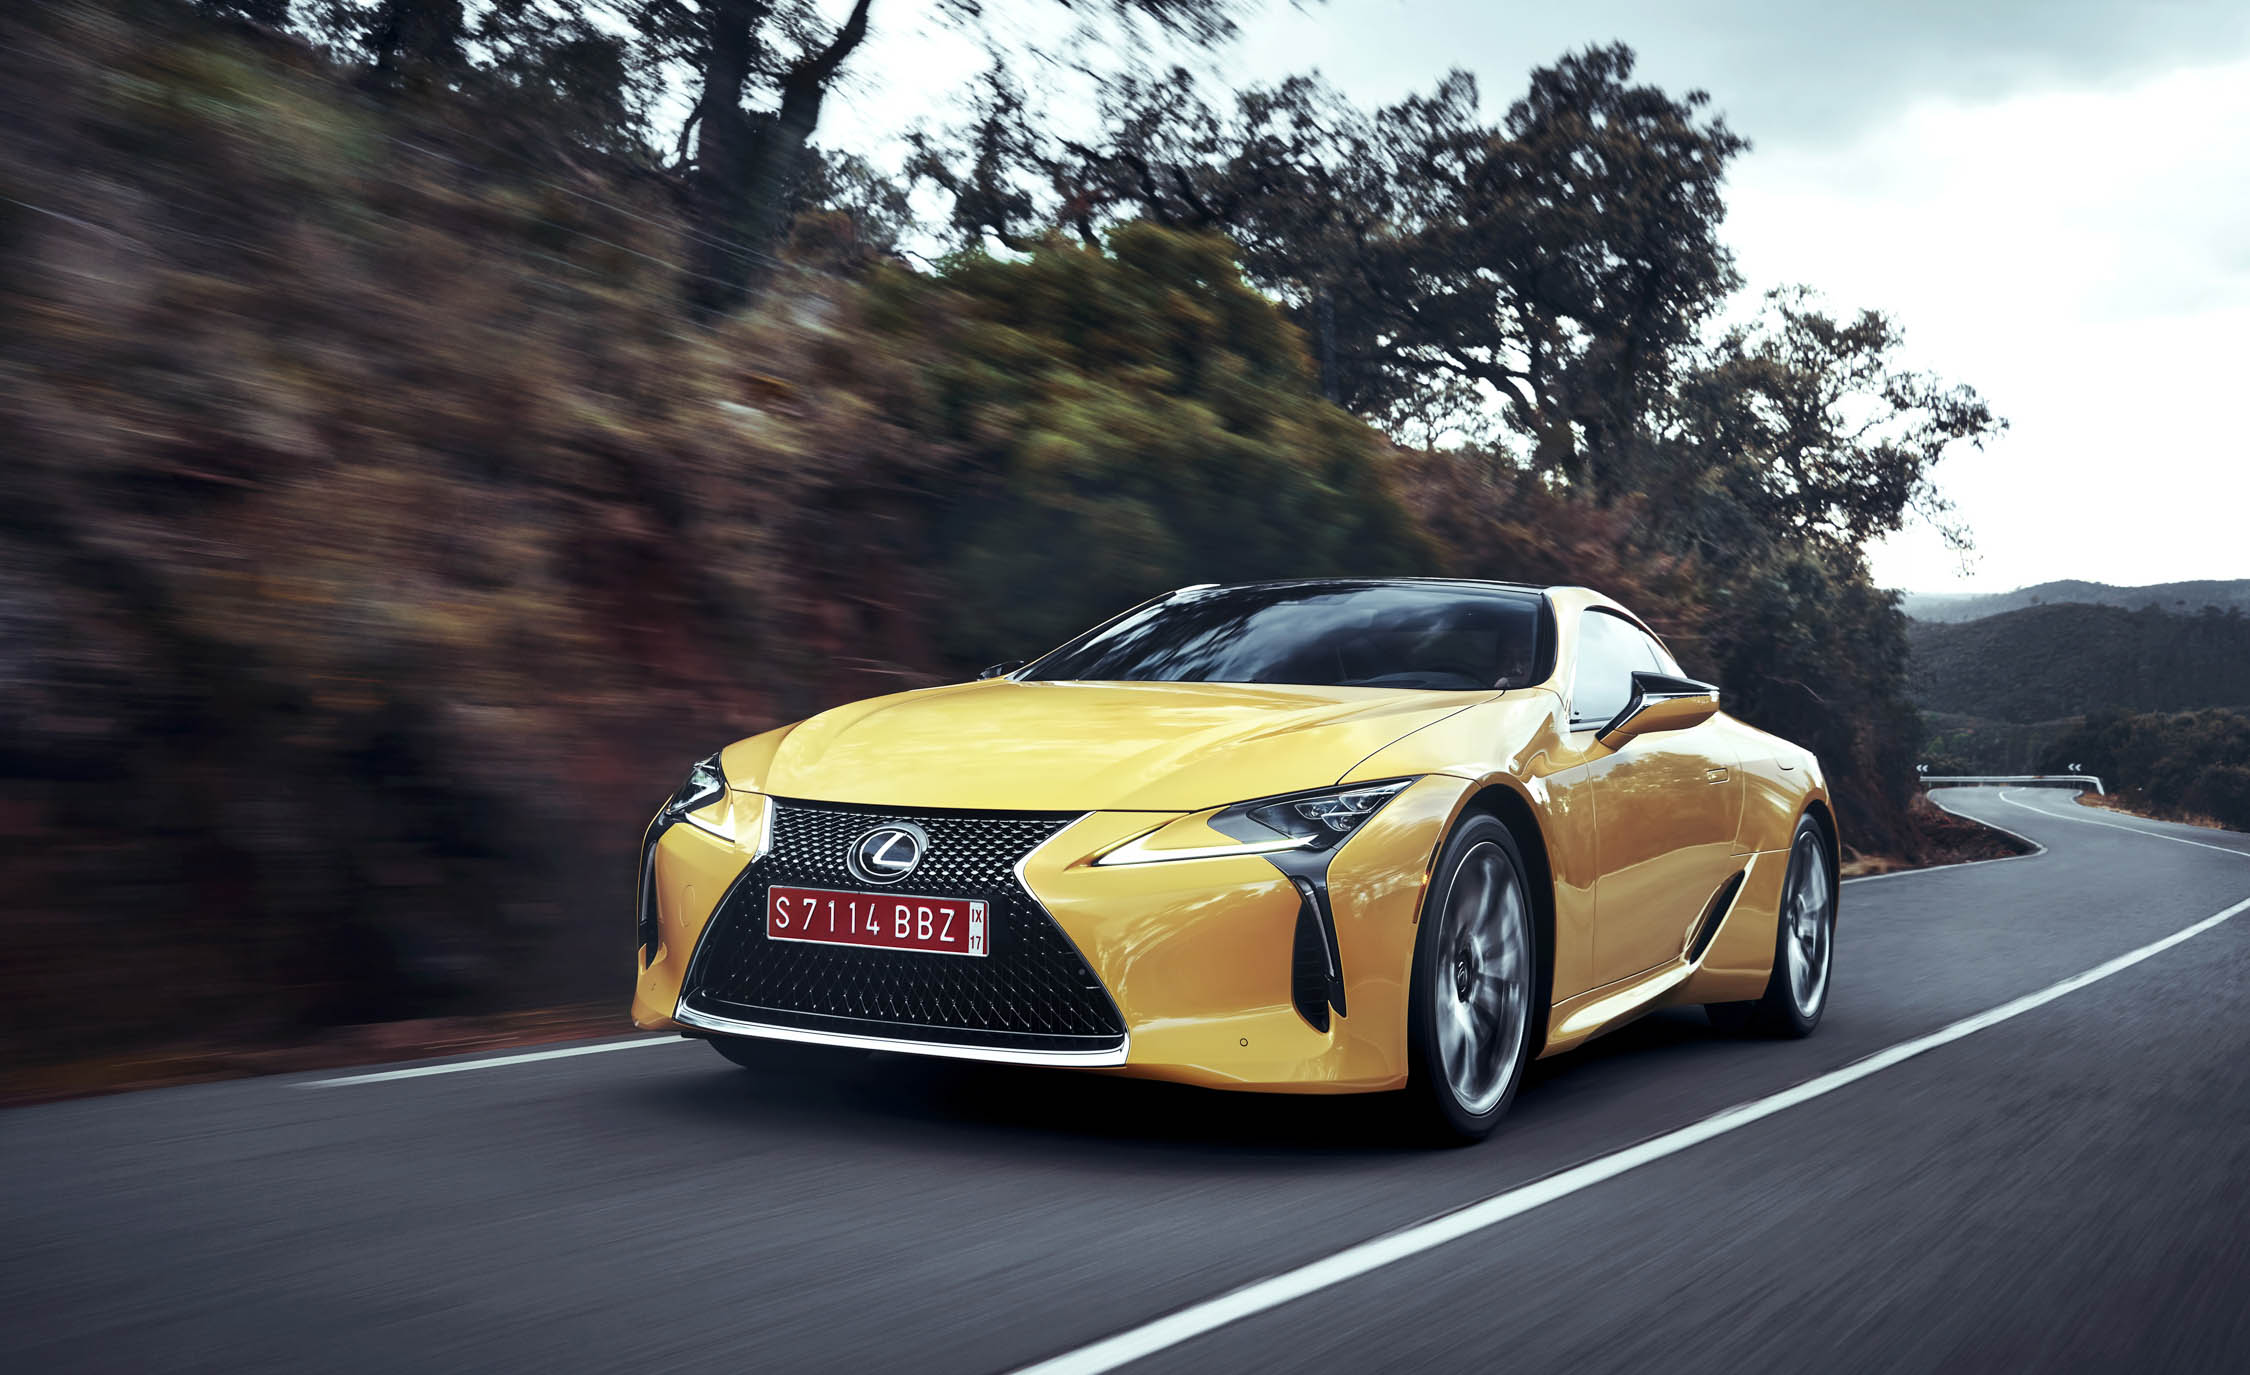 2018 Lexus Lc500 Yellow Test Drive Front Corner View (Photo 74 of 84)